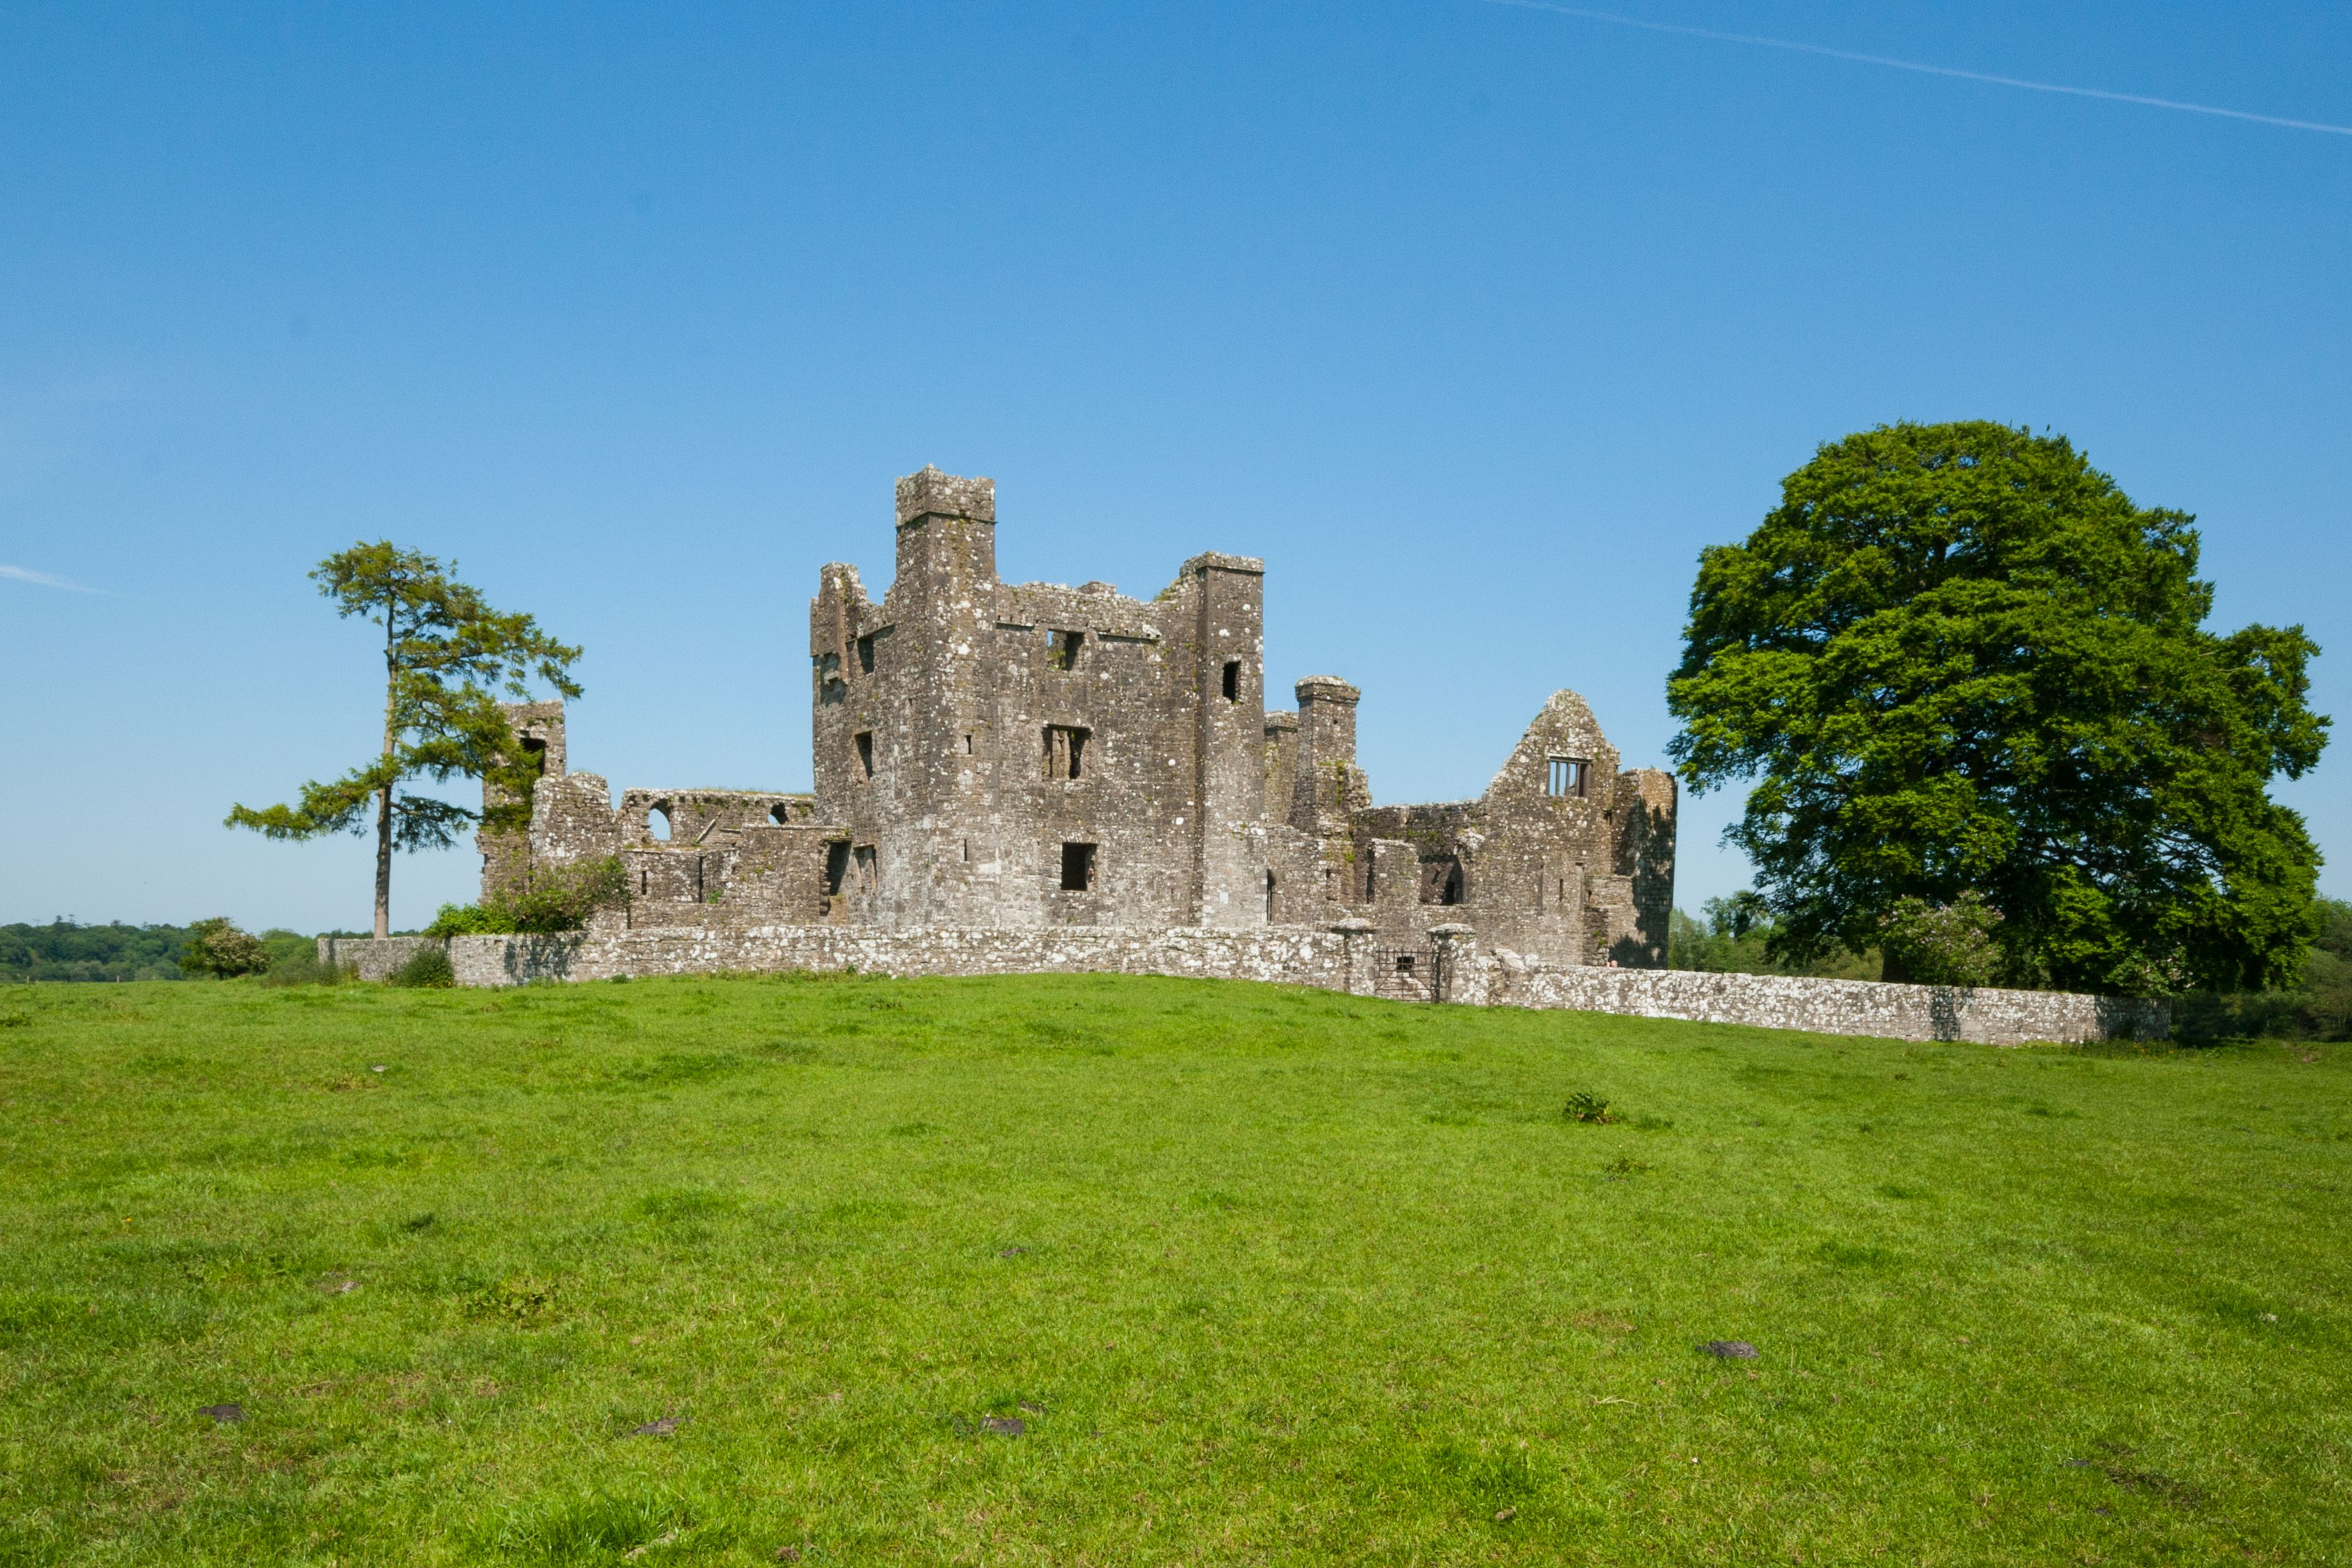 Bective Abbey ruins in Meath